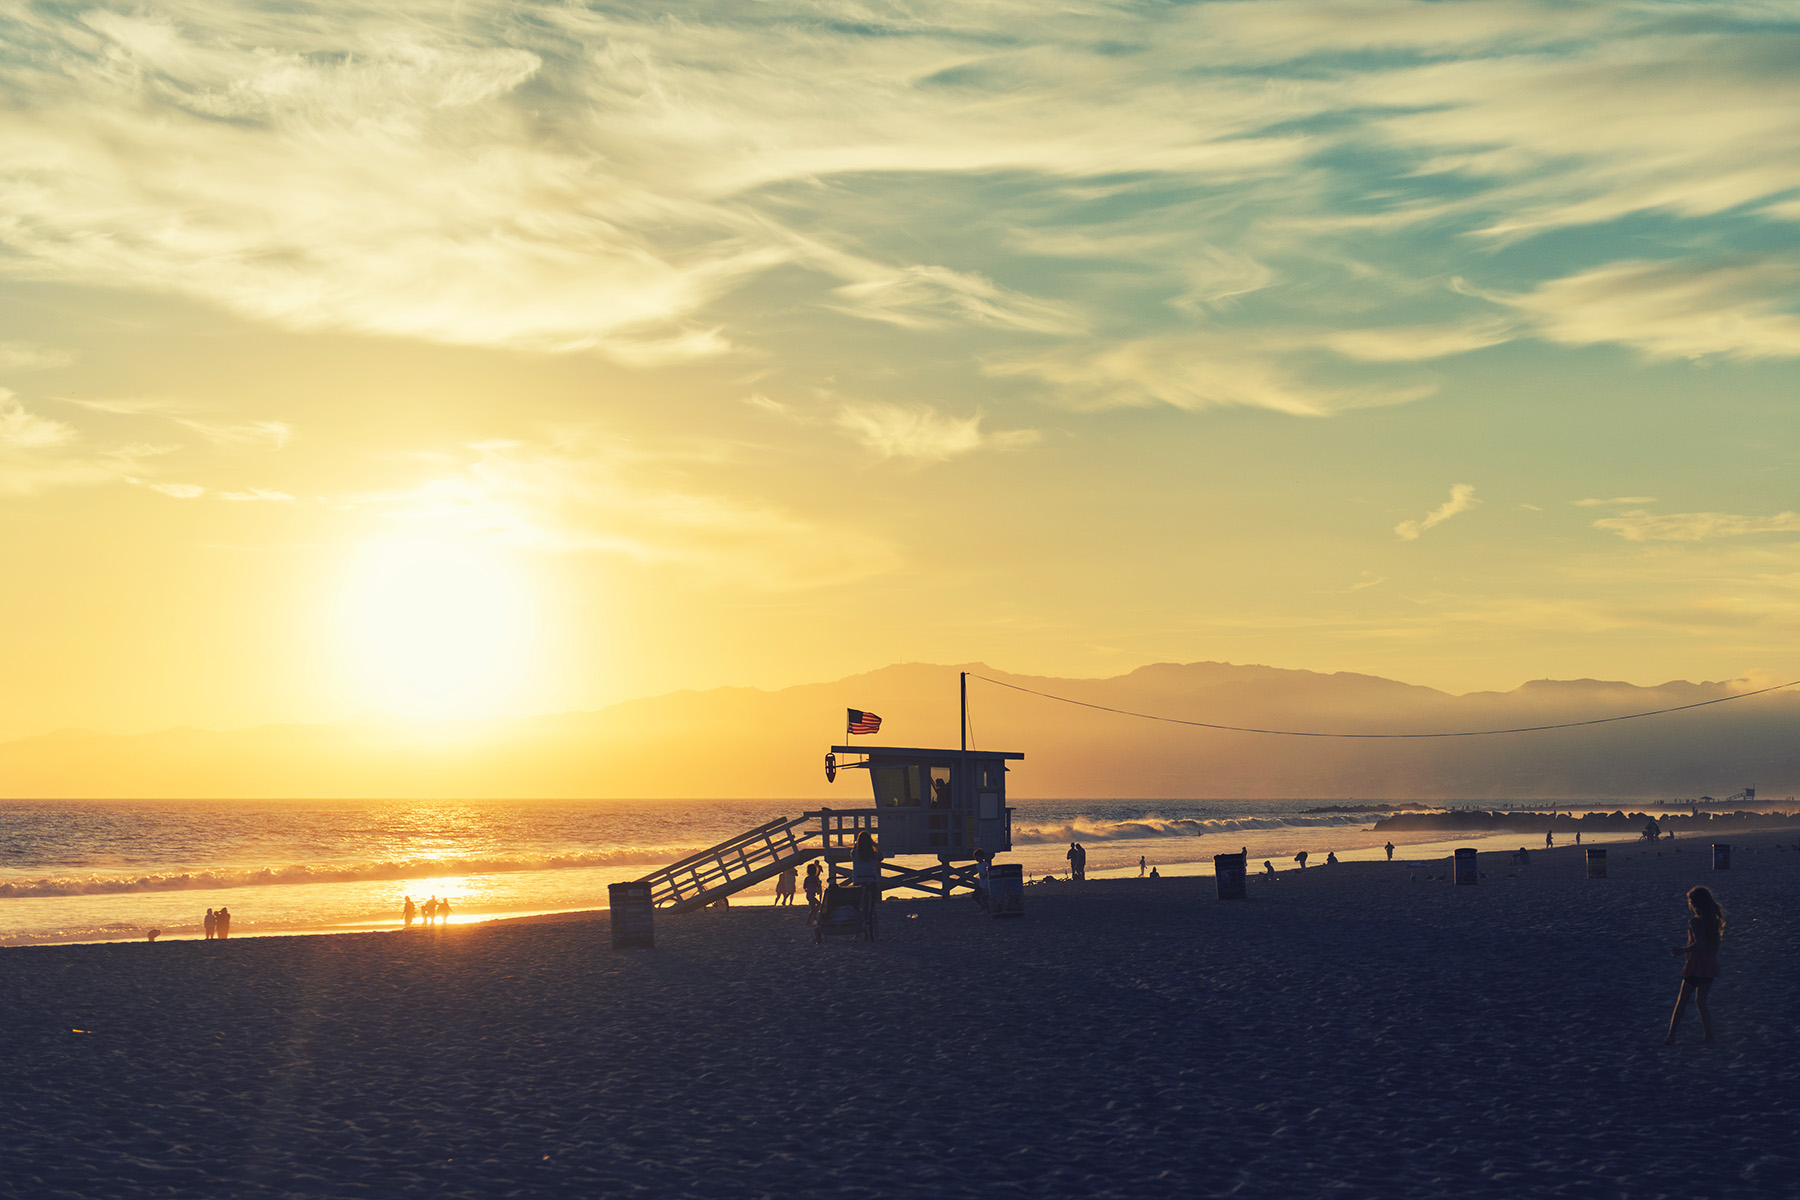 Sunset on Venice Beach from the fishing pier